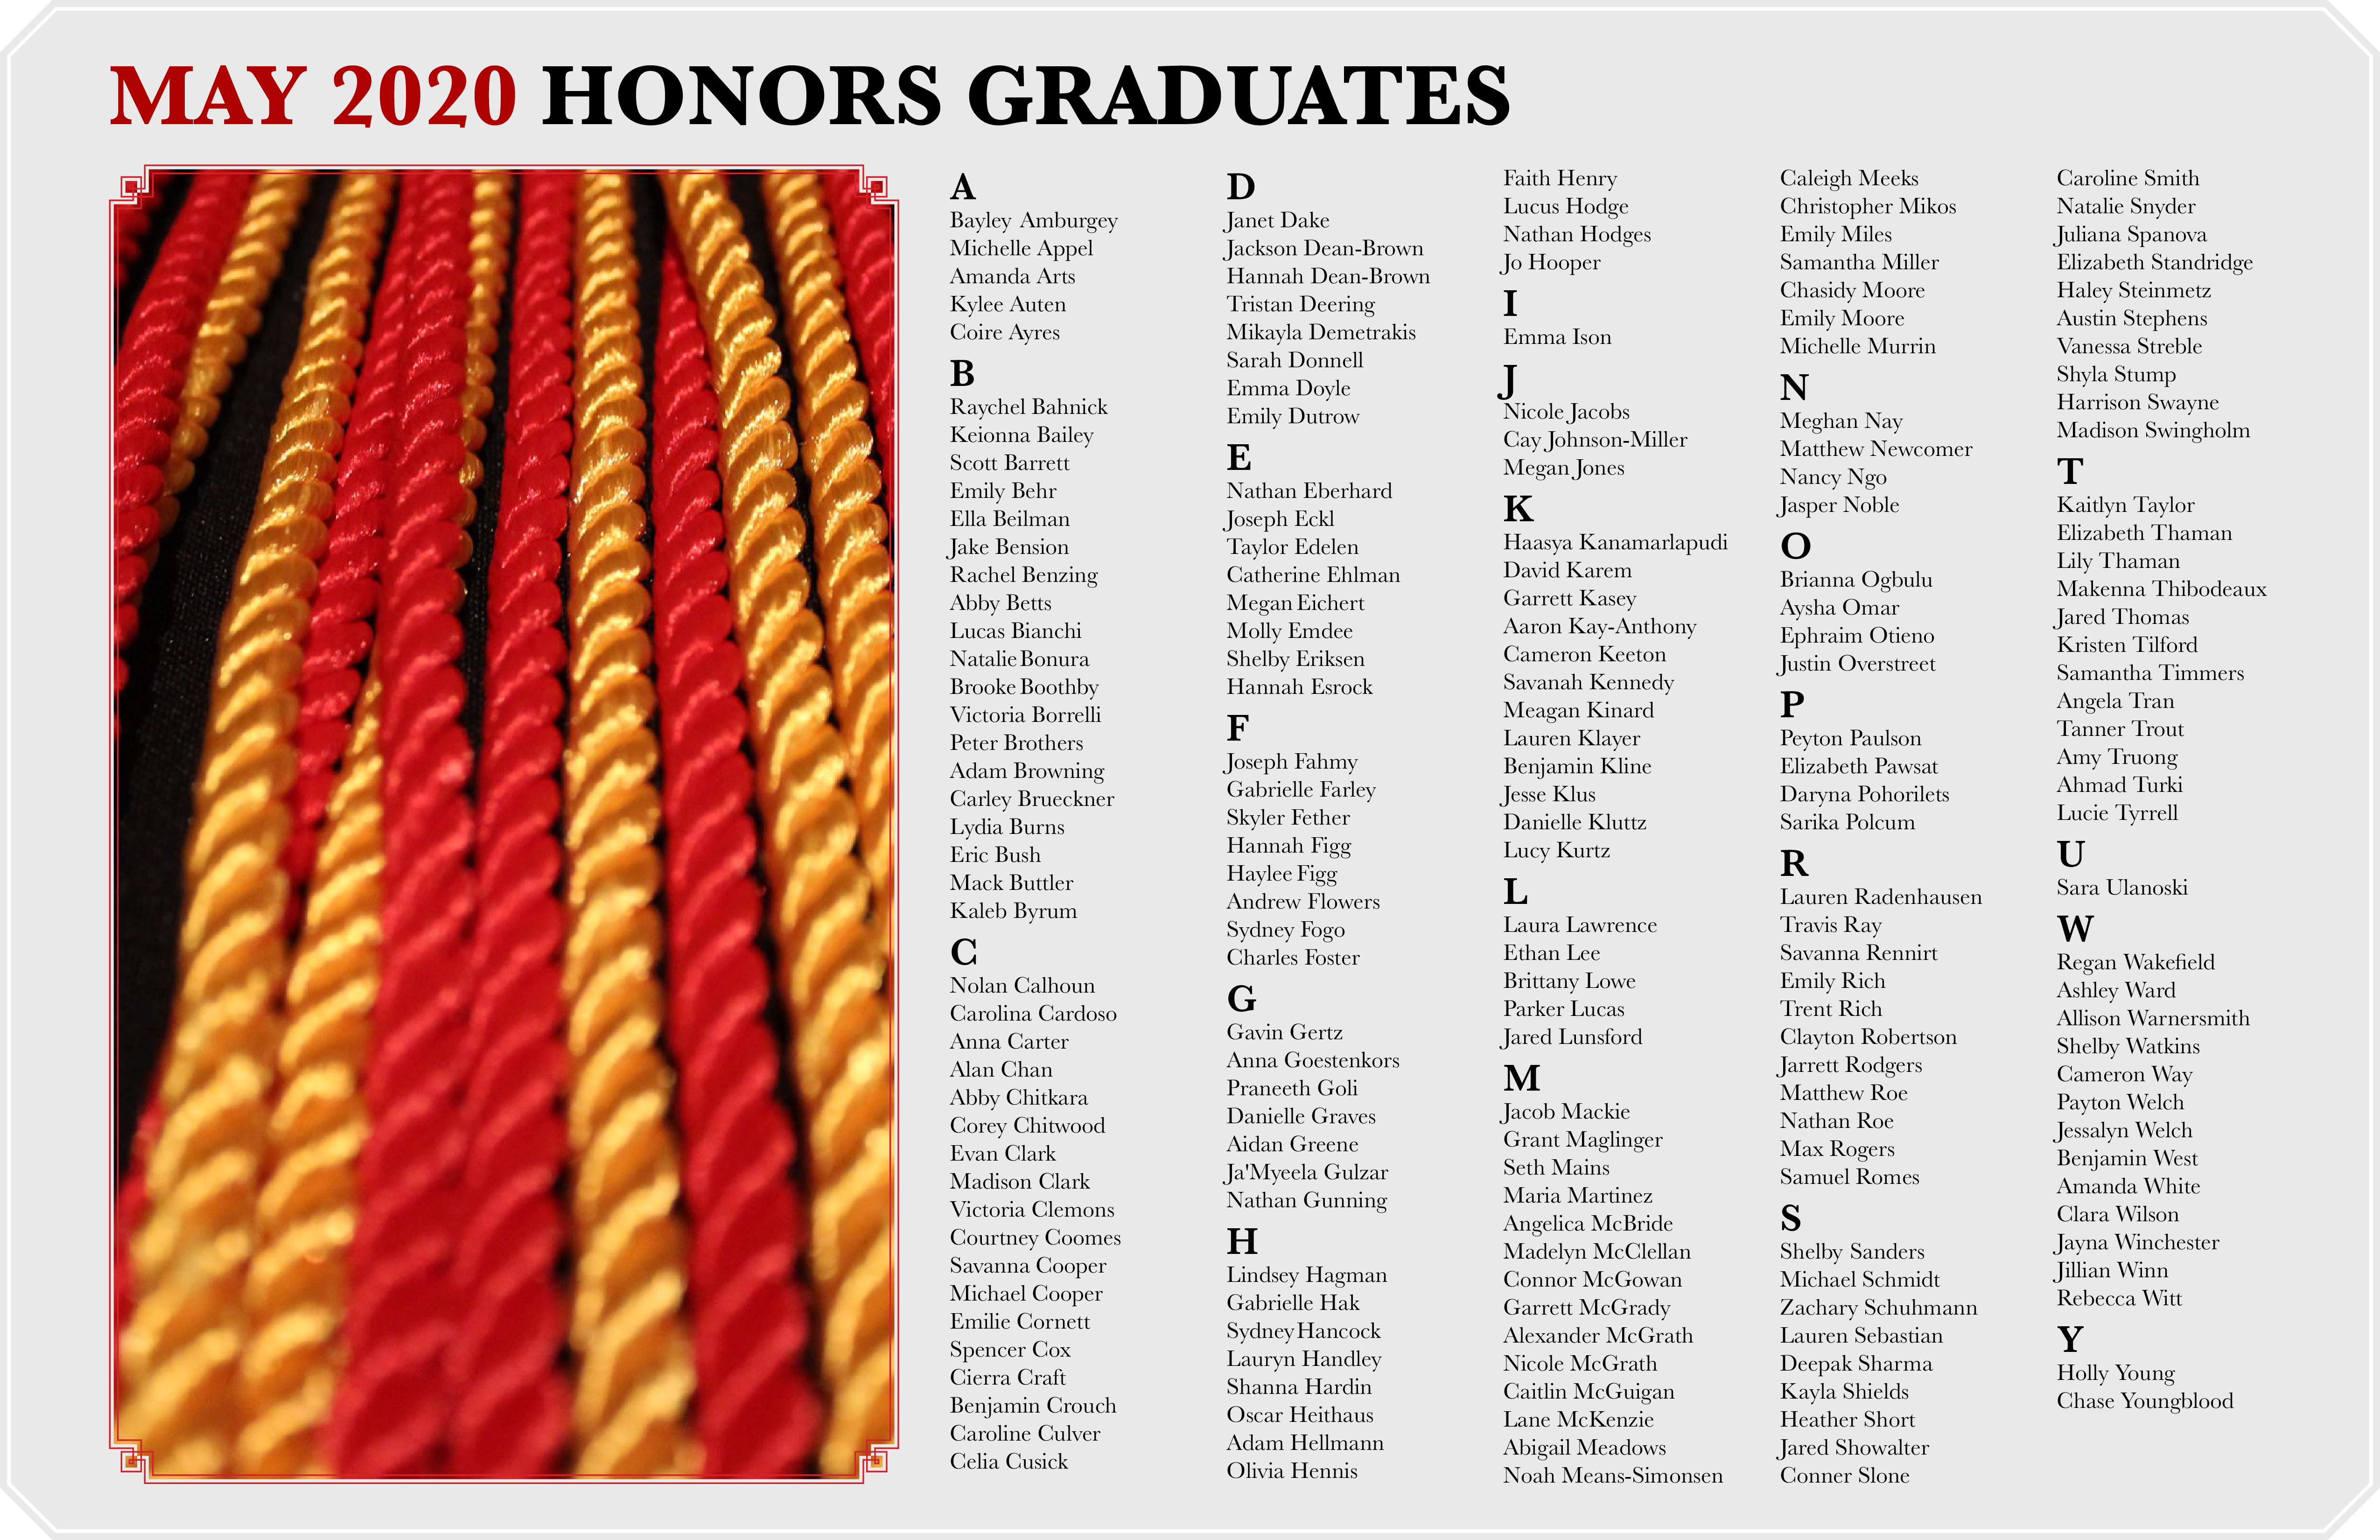 An image of Honors cords next to a list of Honors graduates.